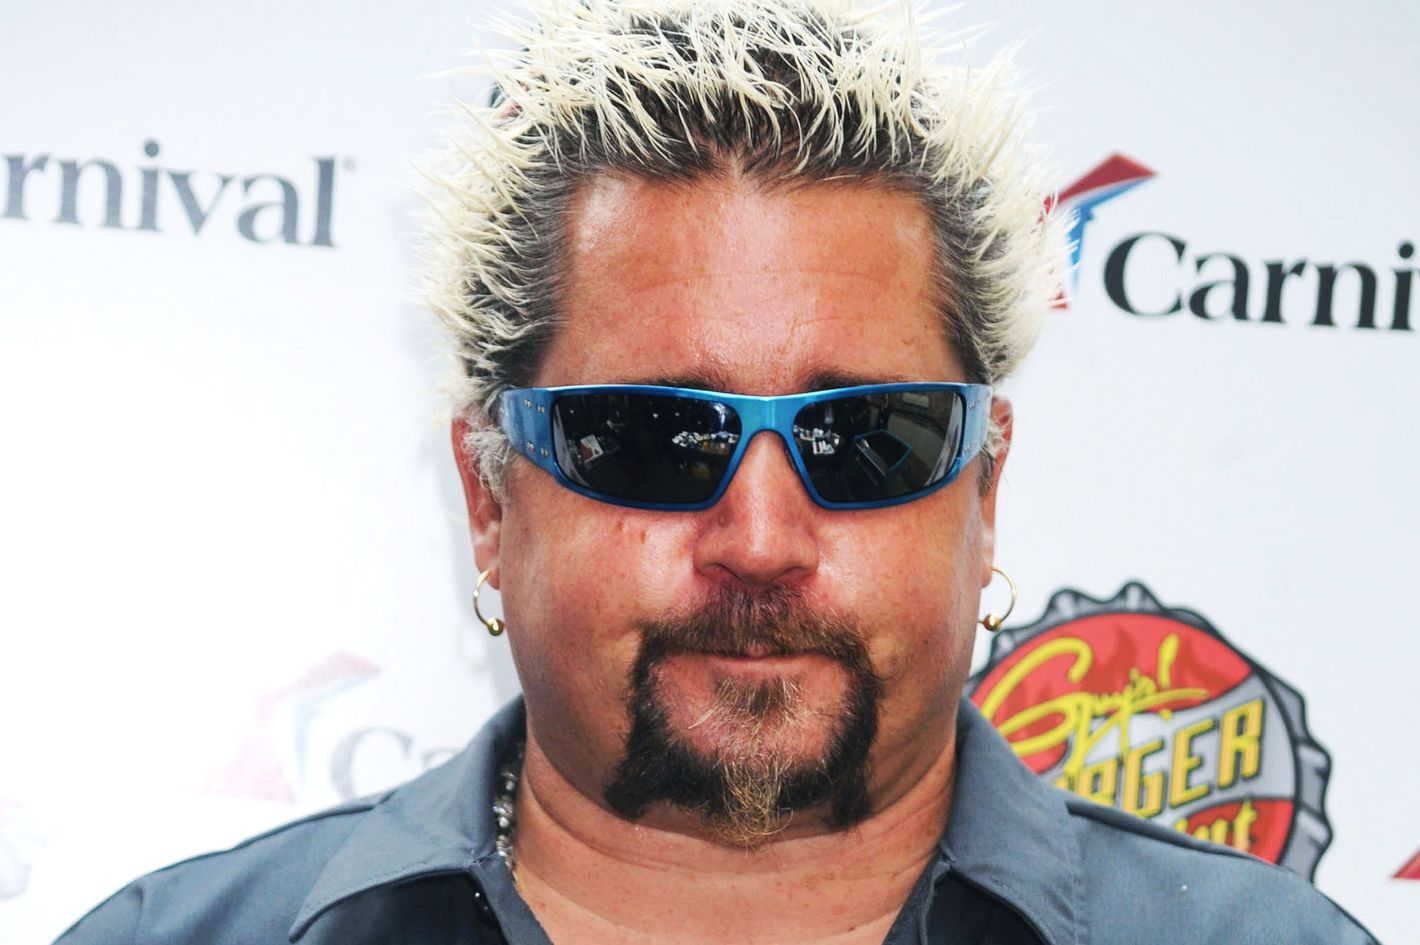 Guy Fieri and George Lopez at the Carnival Cruise Lines Press Conference in New York City. <P> Pictured: Guy Fieri  <P> <B>Ref: SPL320359  031011  </B><BR/> Picture by: Splash News<BR/> </P><P> <B>Splash News and Pictures</B><BR/> Los Angeles:310-821-2666<BR/> New York:212-619-2666<BR/> London:870-934-2666<BR/> photodesk@splashnews.com<BR/> </P>